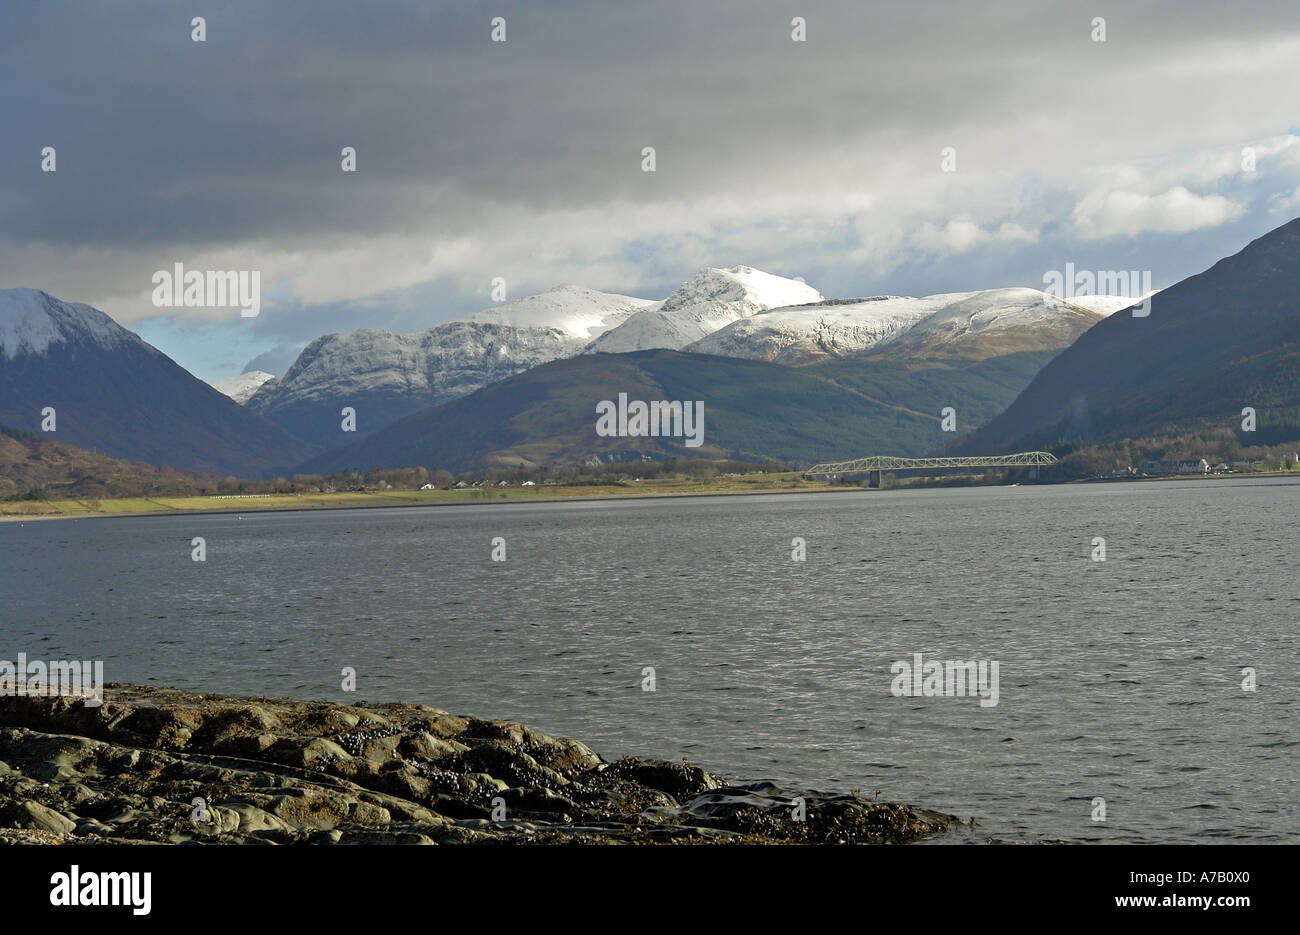 The magnificent Bidean nam Bian in Glen Coe viewed from the shores of Loch Linnhe at Onich - Stock Image